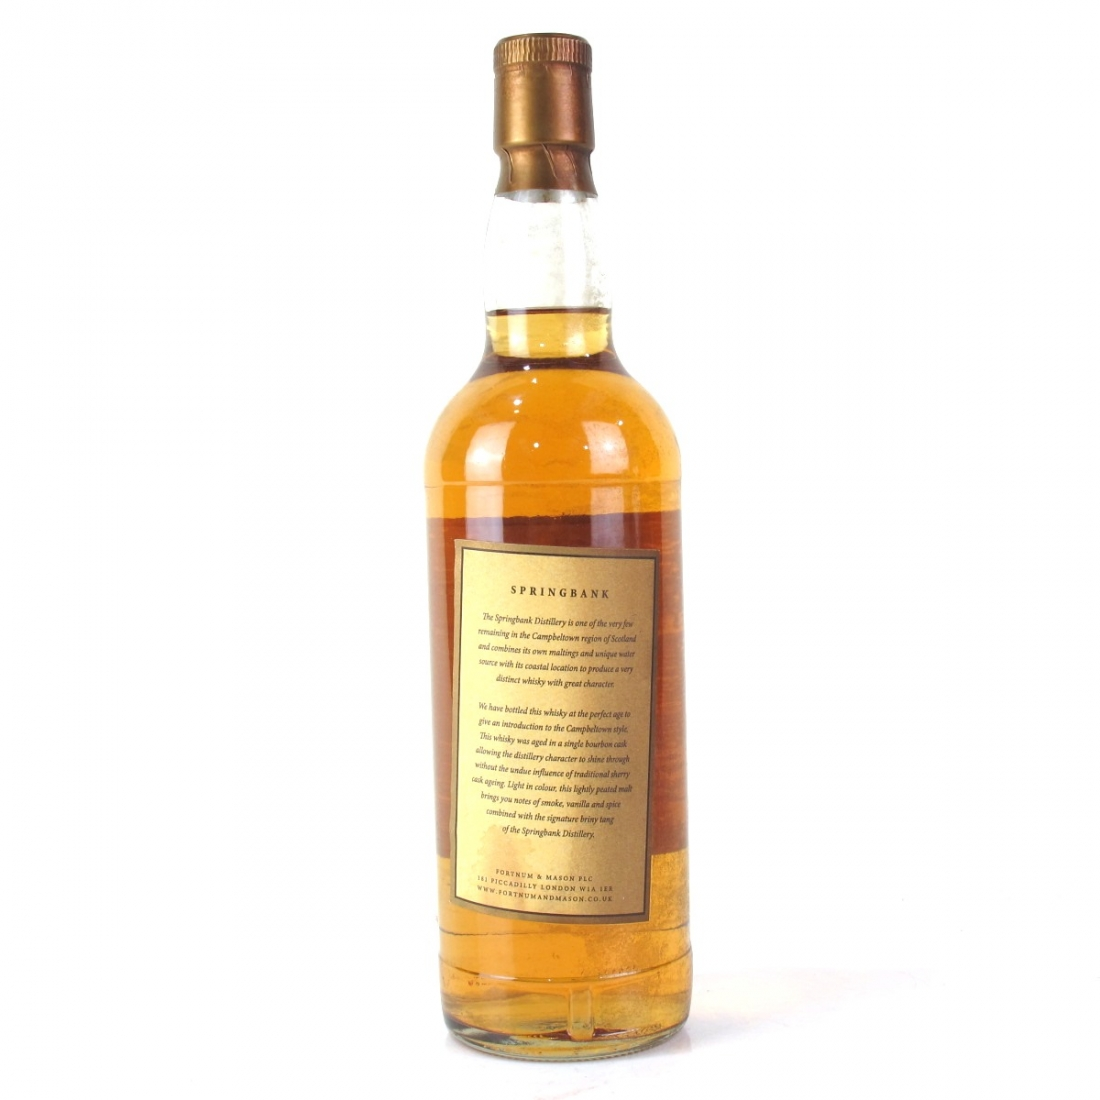 Springbank 1991 Fortnum and Mason 13 Year Old